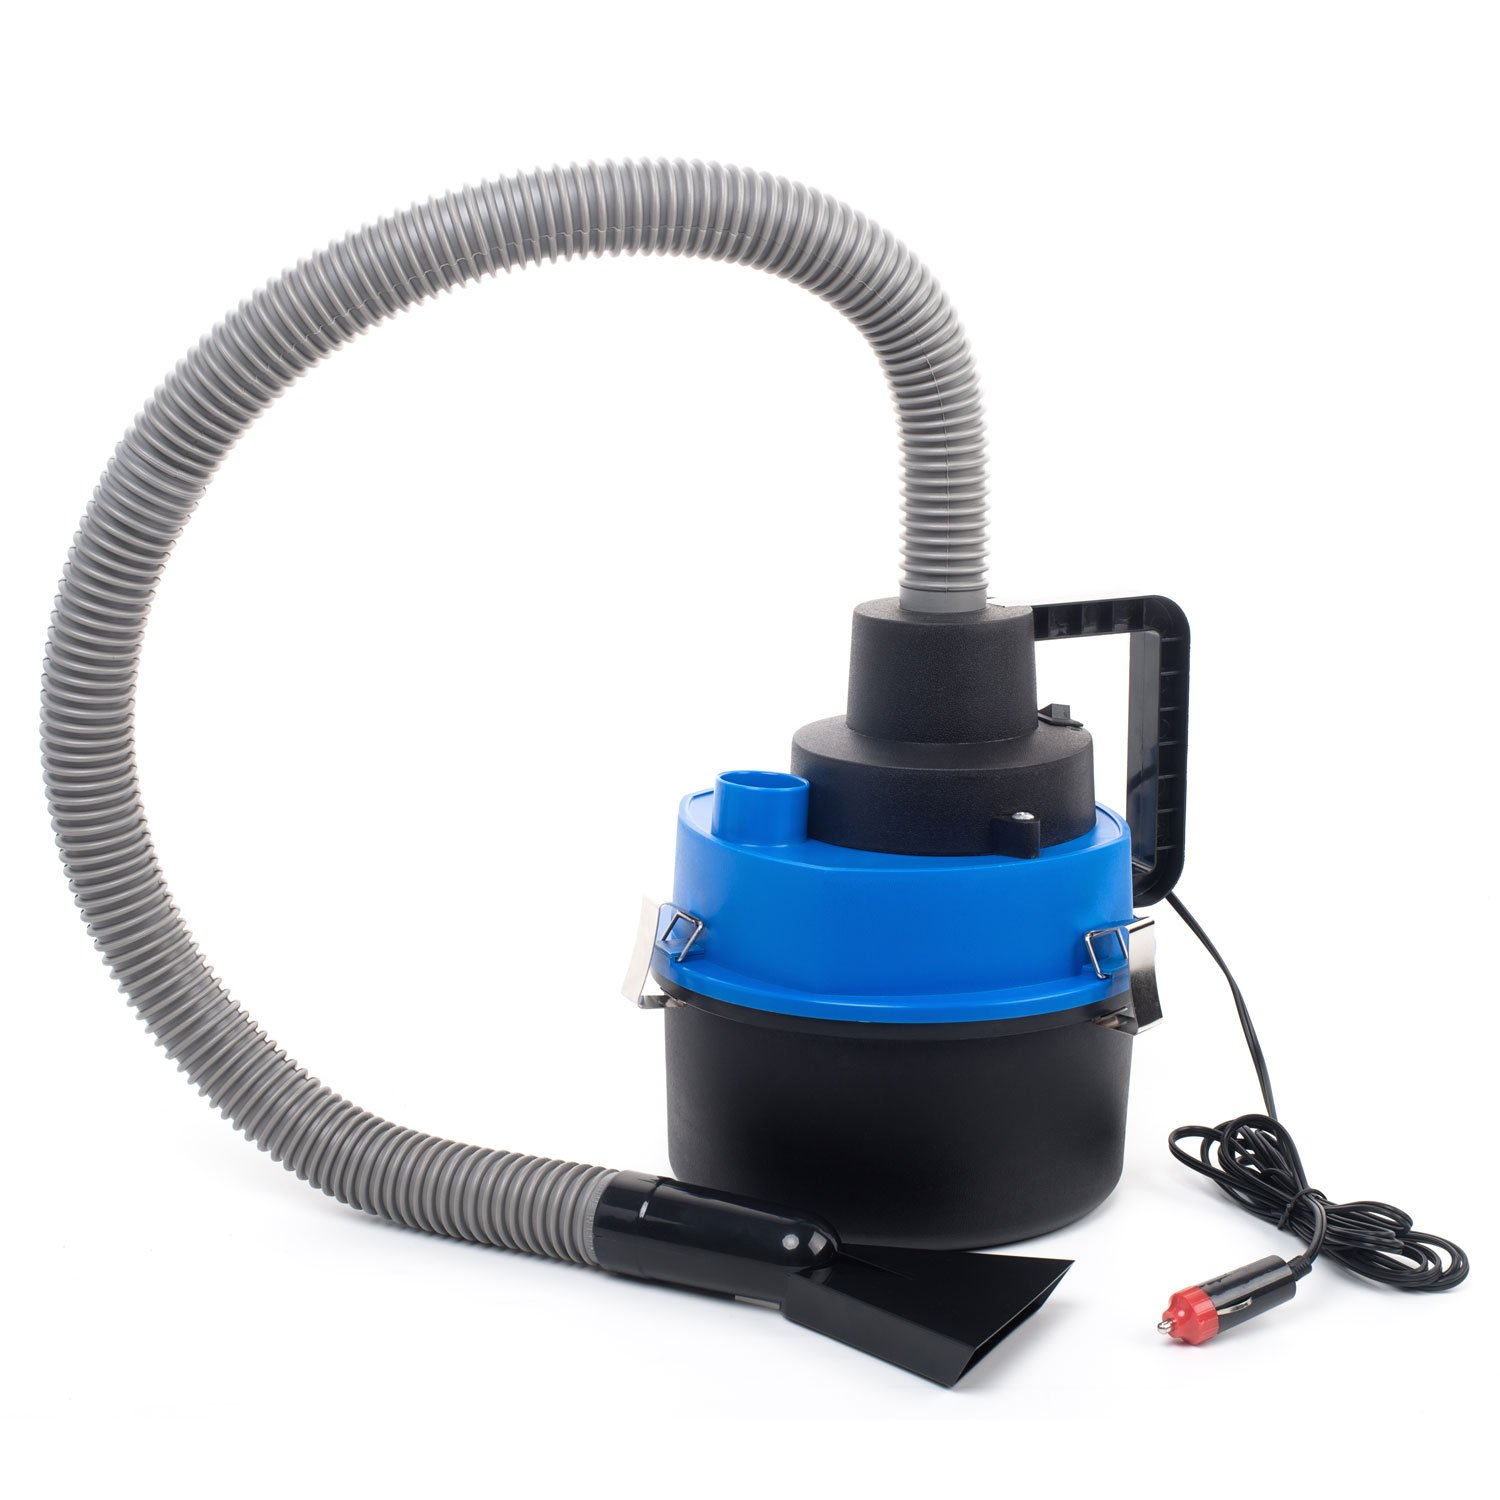 12 Volt Wet/Dry Auto Canister Vacuum Perfect for Car, Auto, Truck, Van, or Vehicle. Low Powered 12 Volt Cigarette Lighter Socket. Portable 12V Light Duty Vac